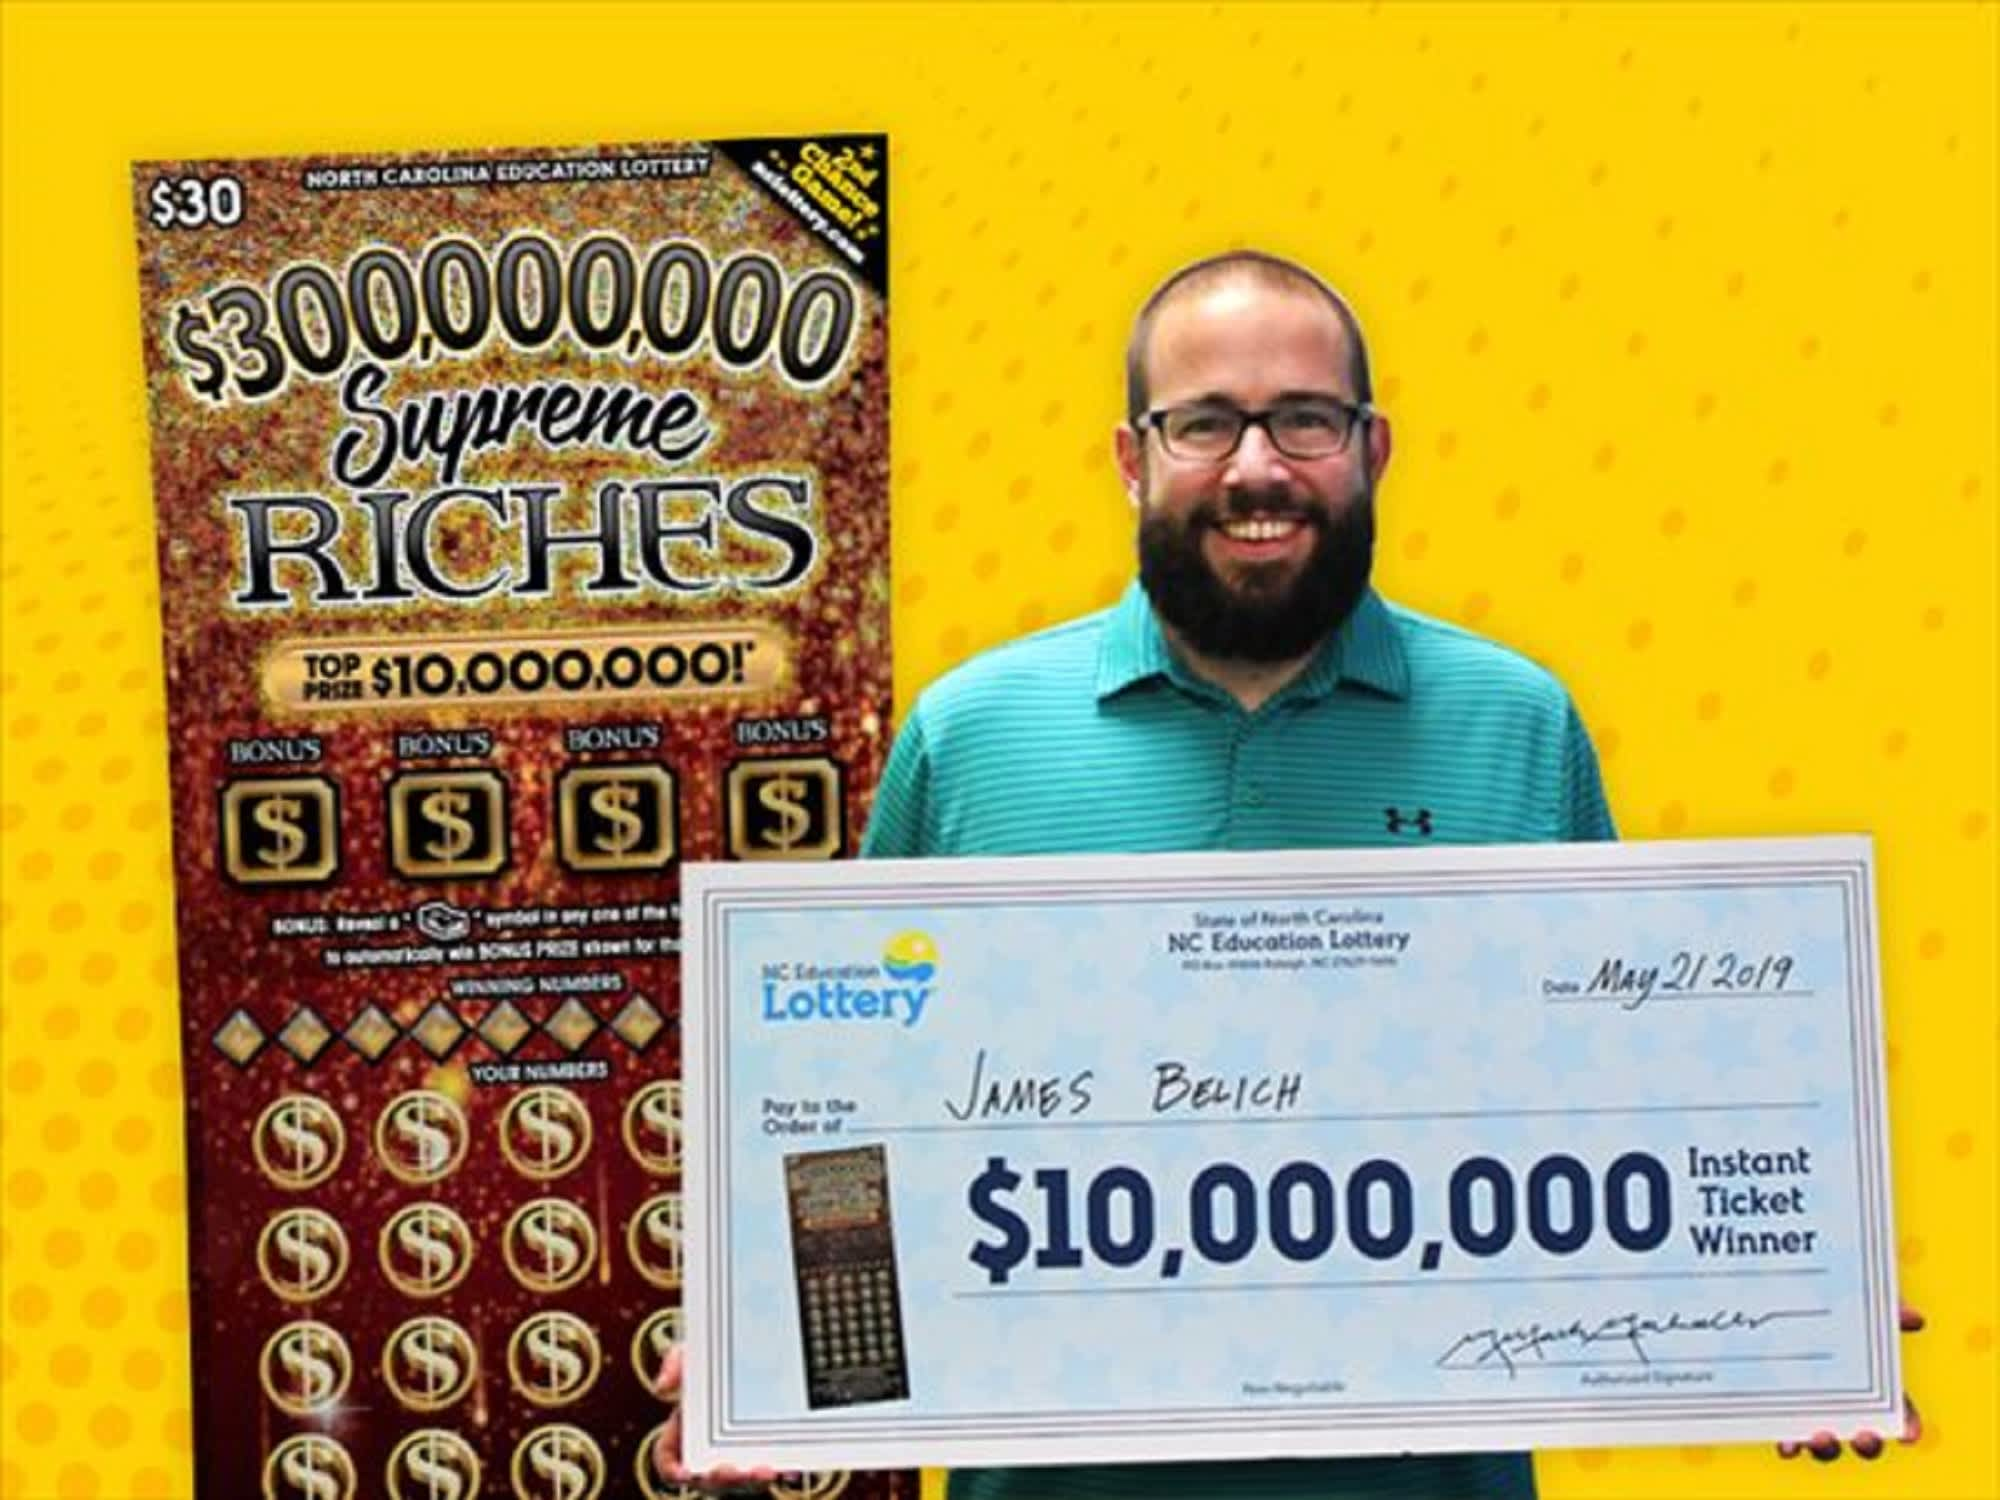 SC dad bought a lottery ticket on his lunch break, won $10